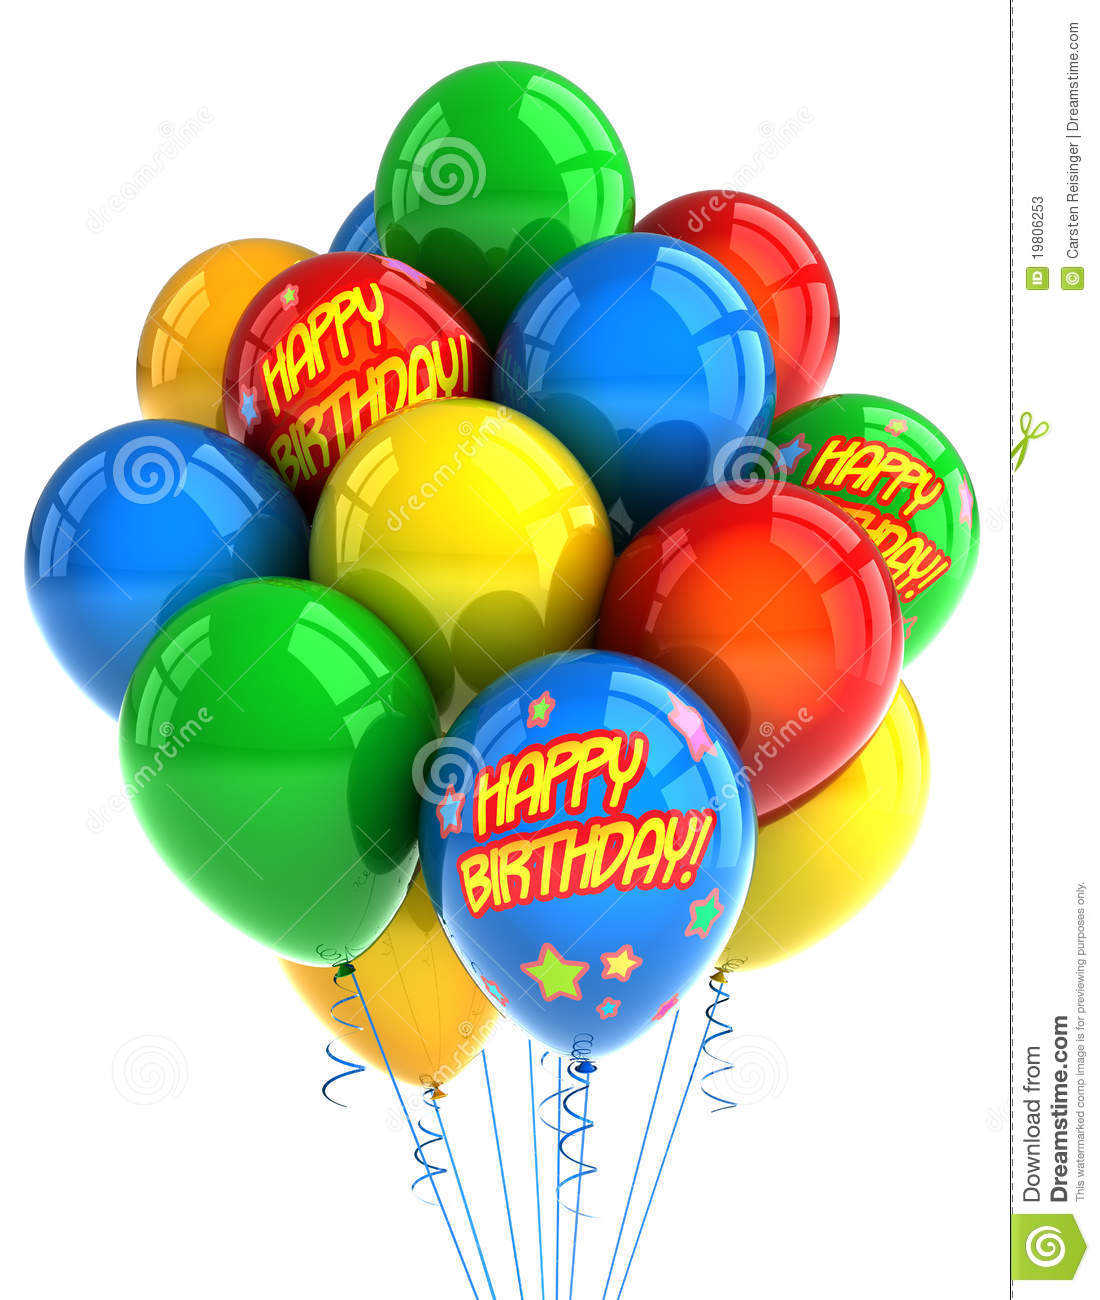 Colorful Party Balloons Celebrating A Birthday Over White